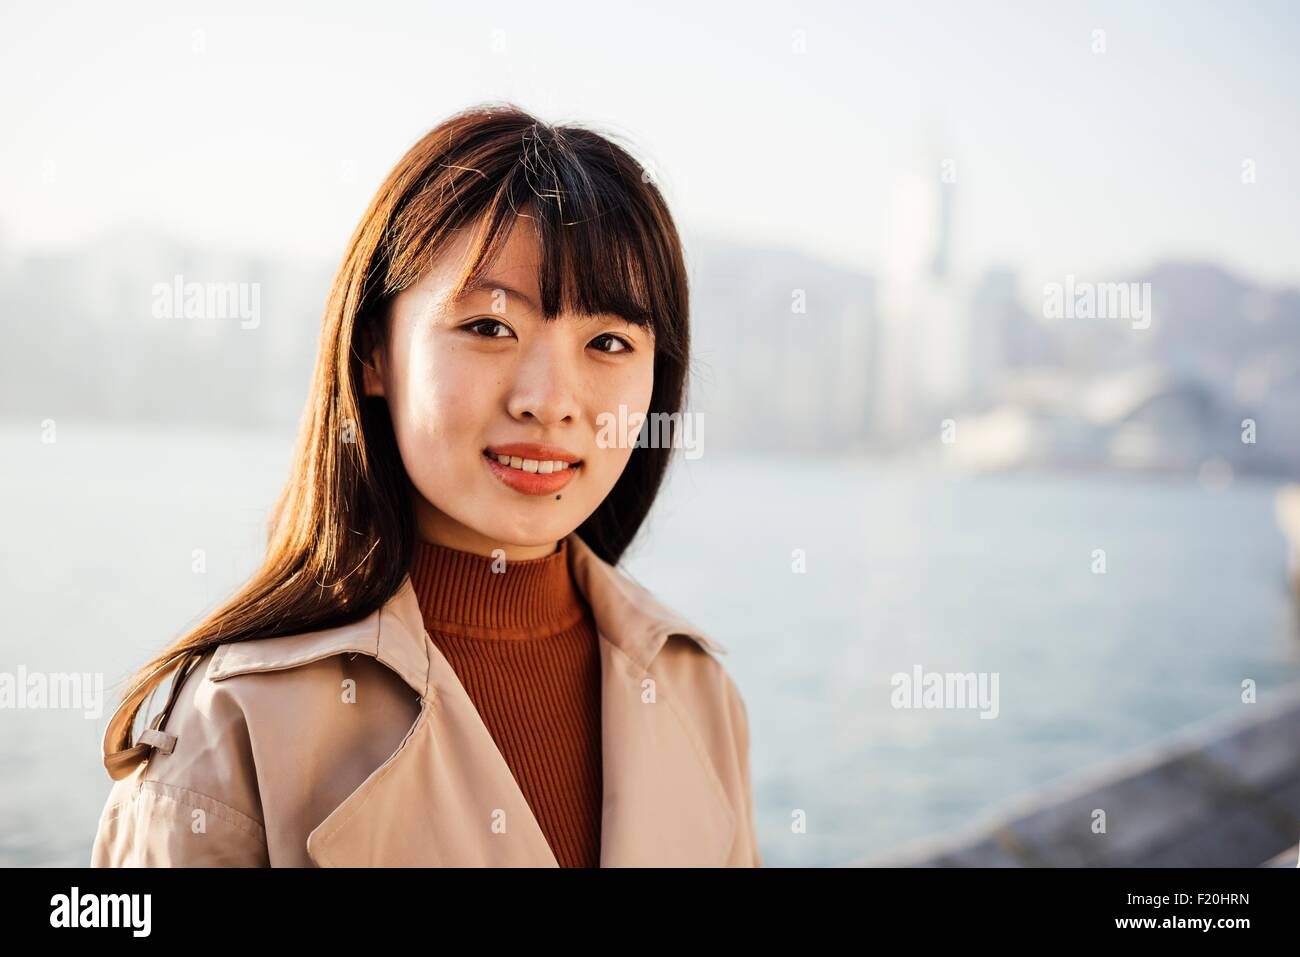 Portrait of young woman with long hair in front of water looking at camera smiling - Stock Image